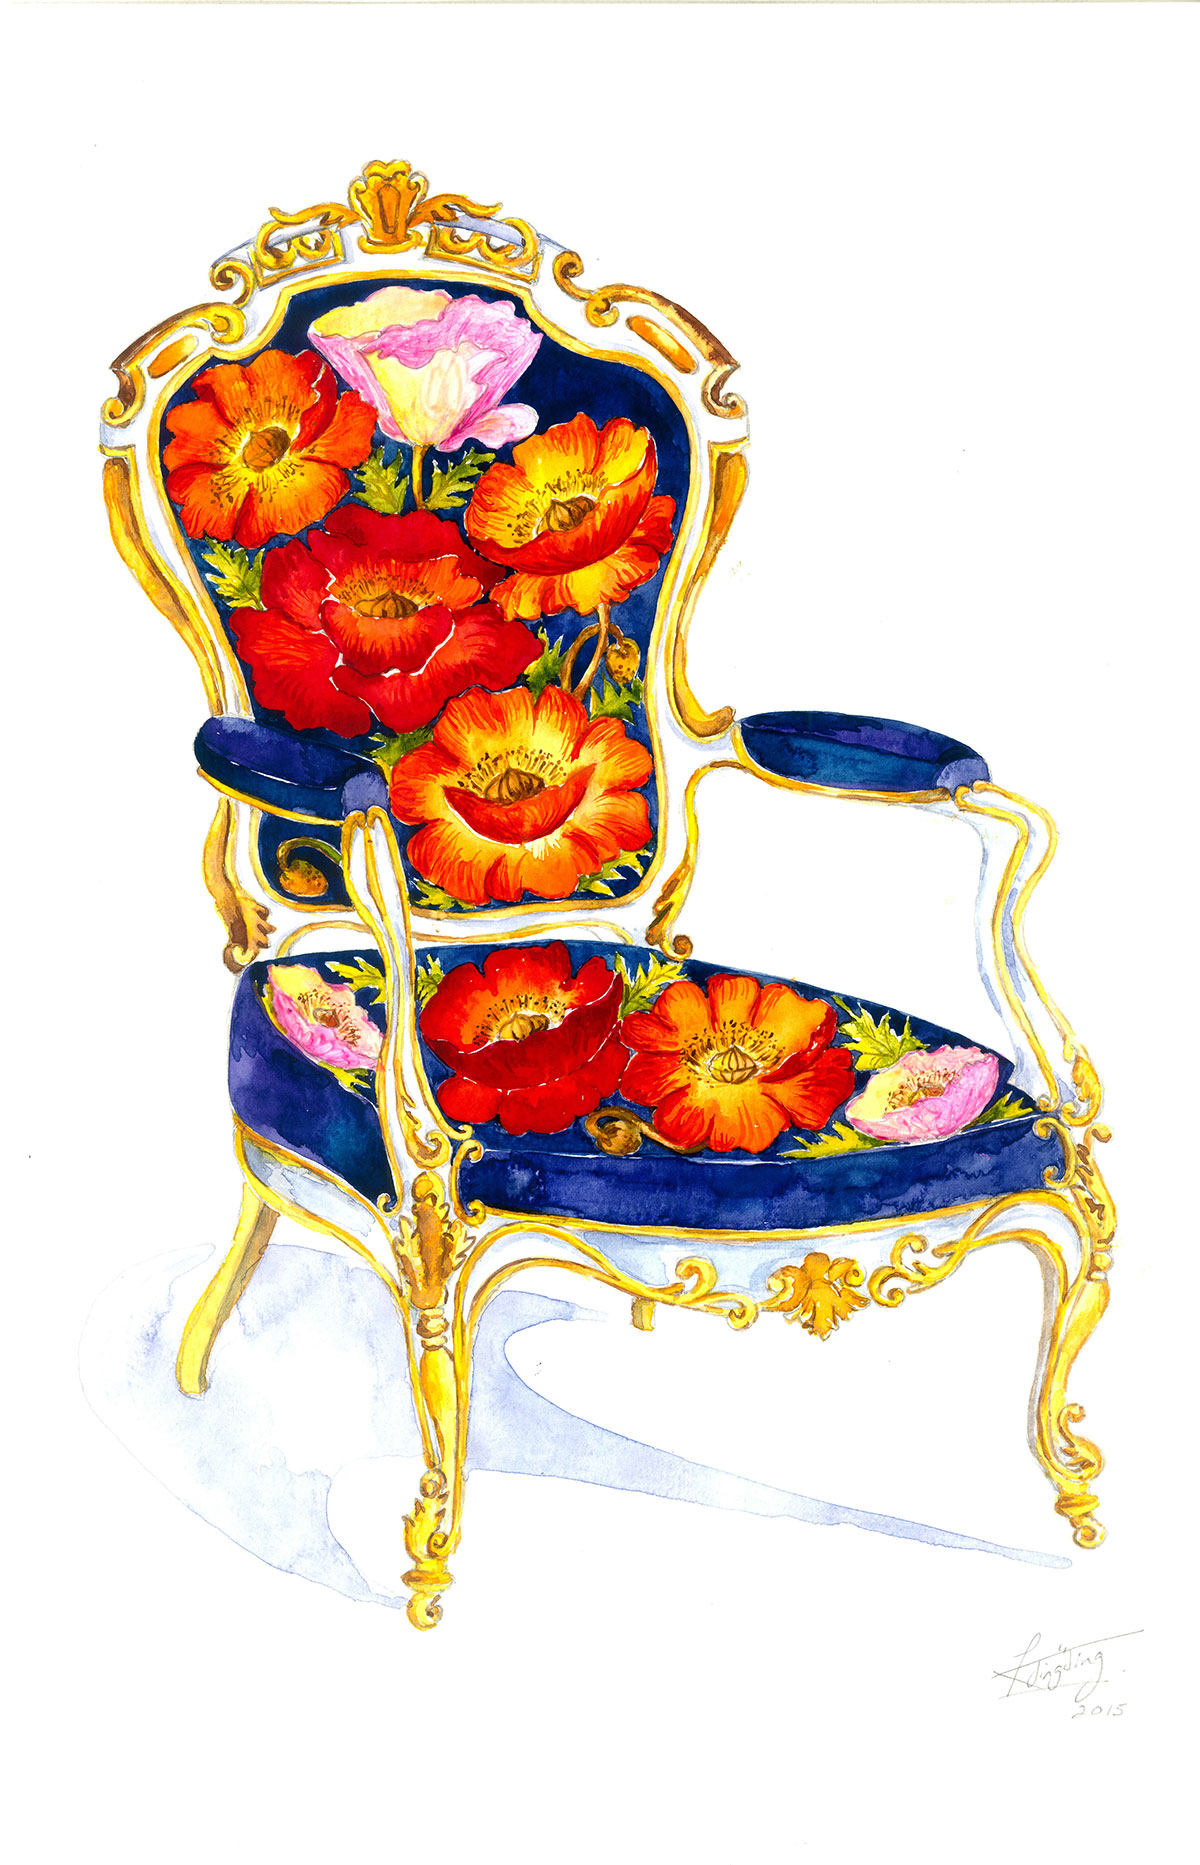 colorful chair with flowers